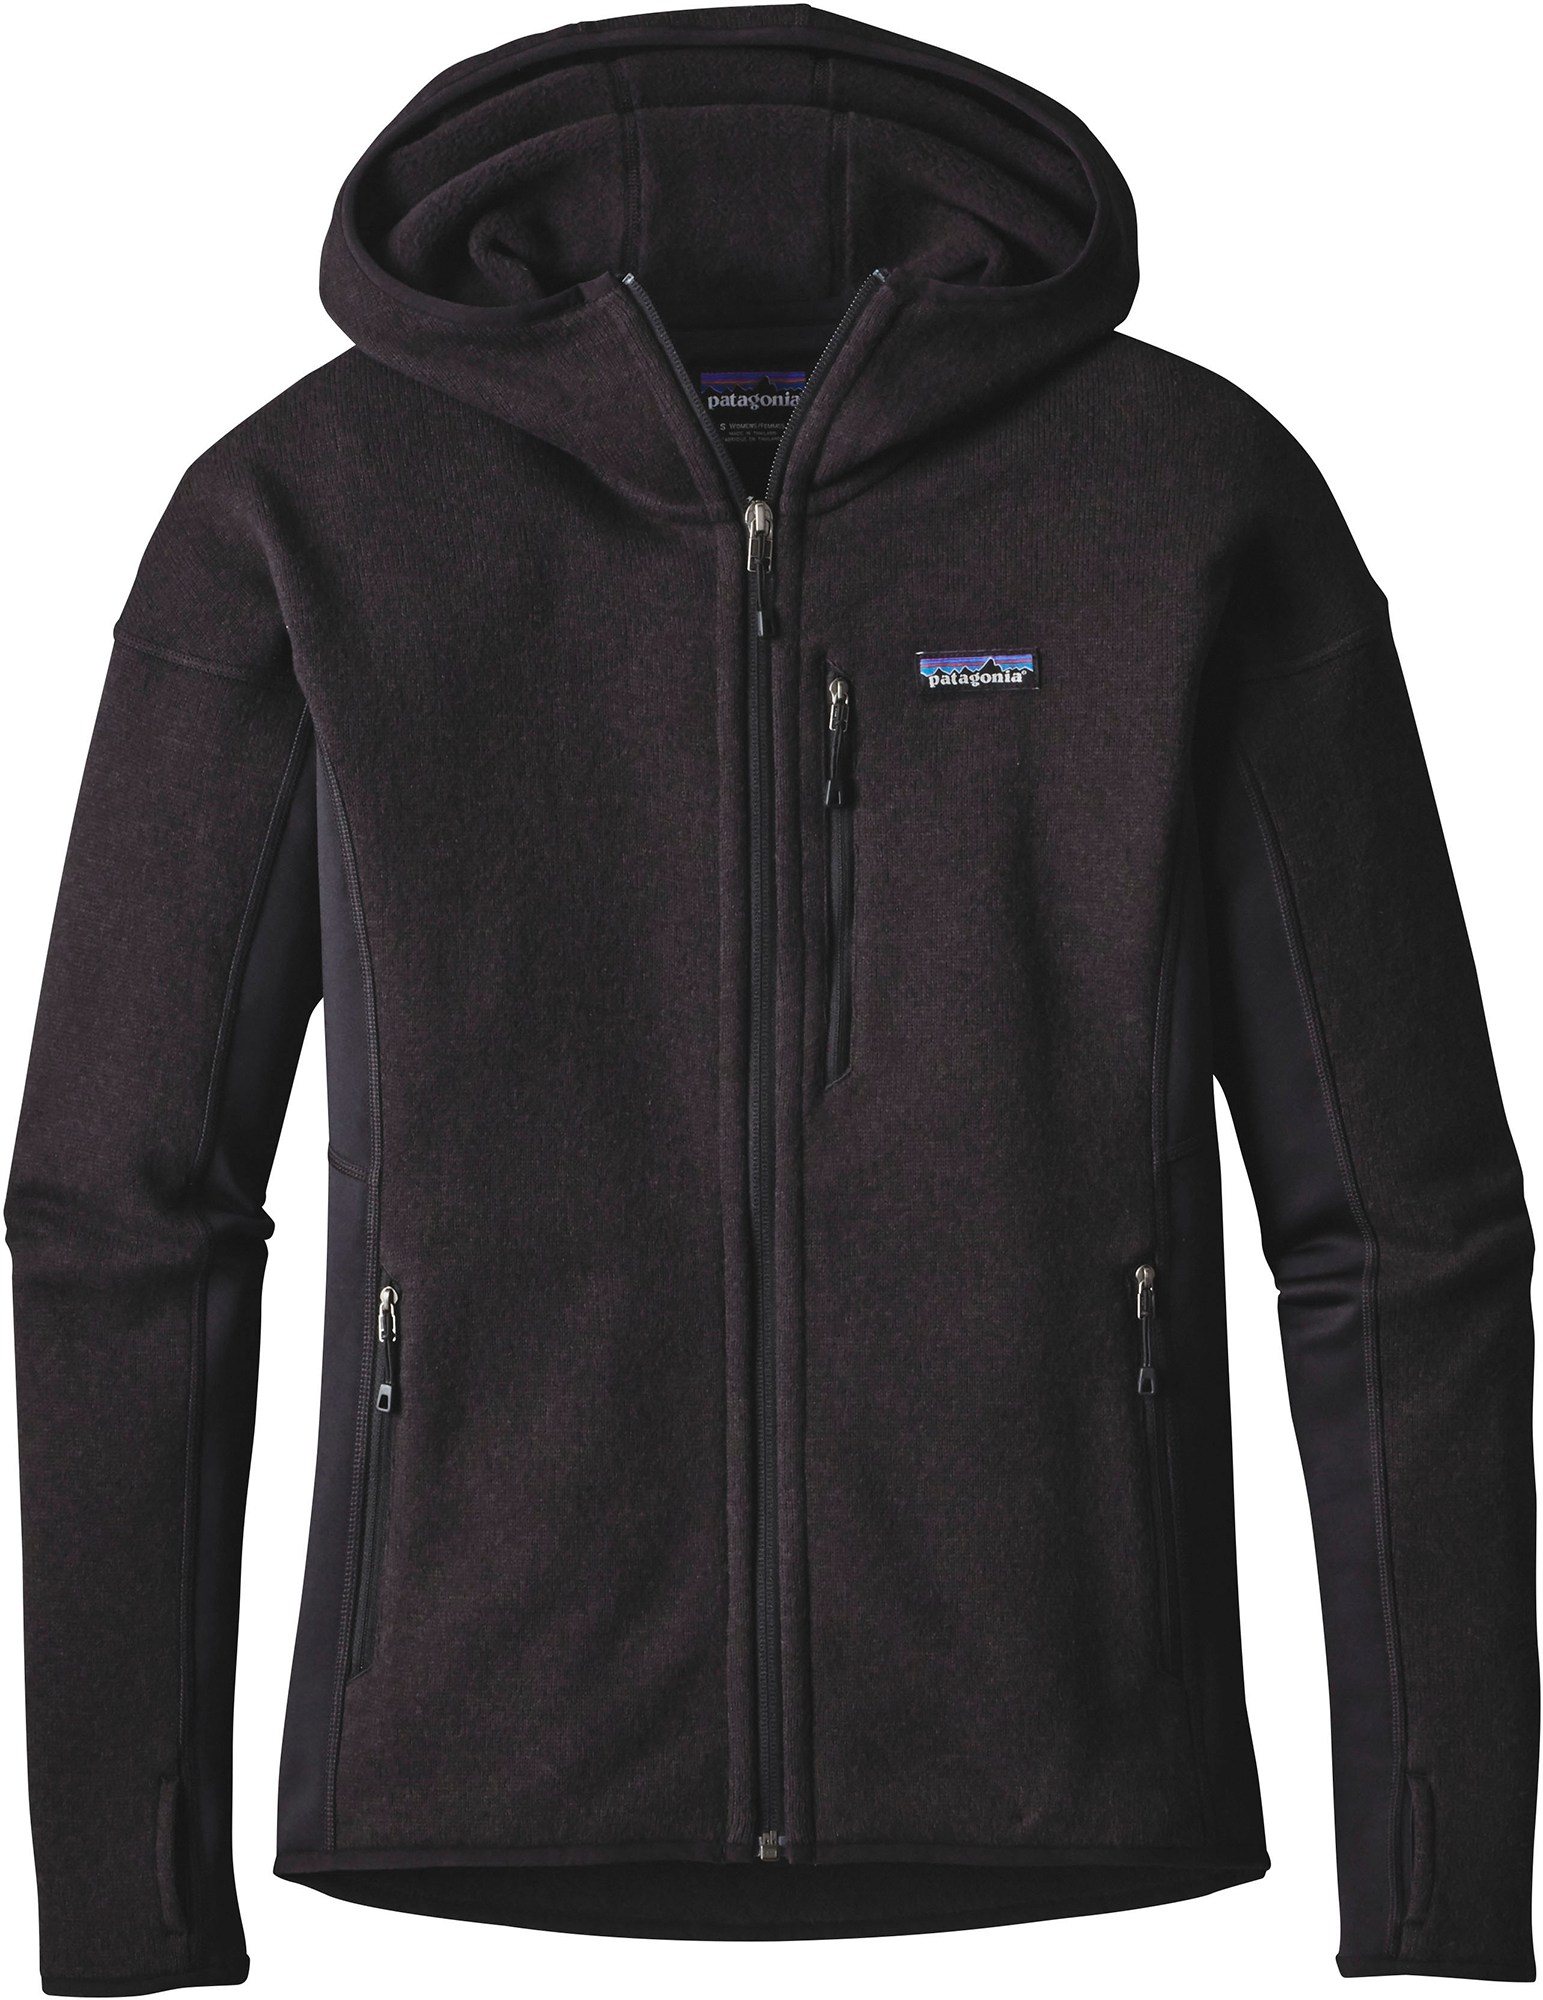 Patagonia Performance Better Sweater Hoodie - Women's